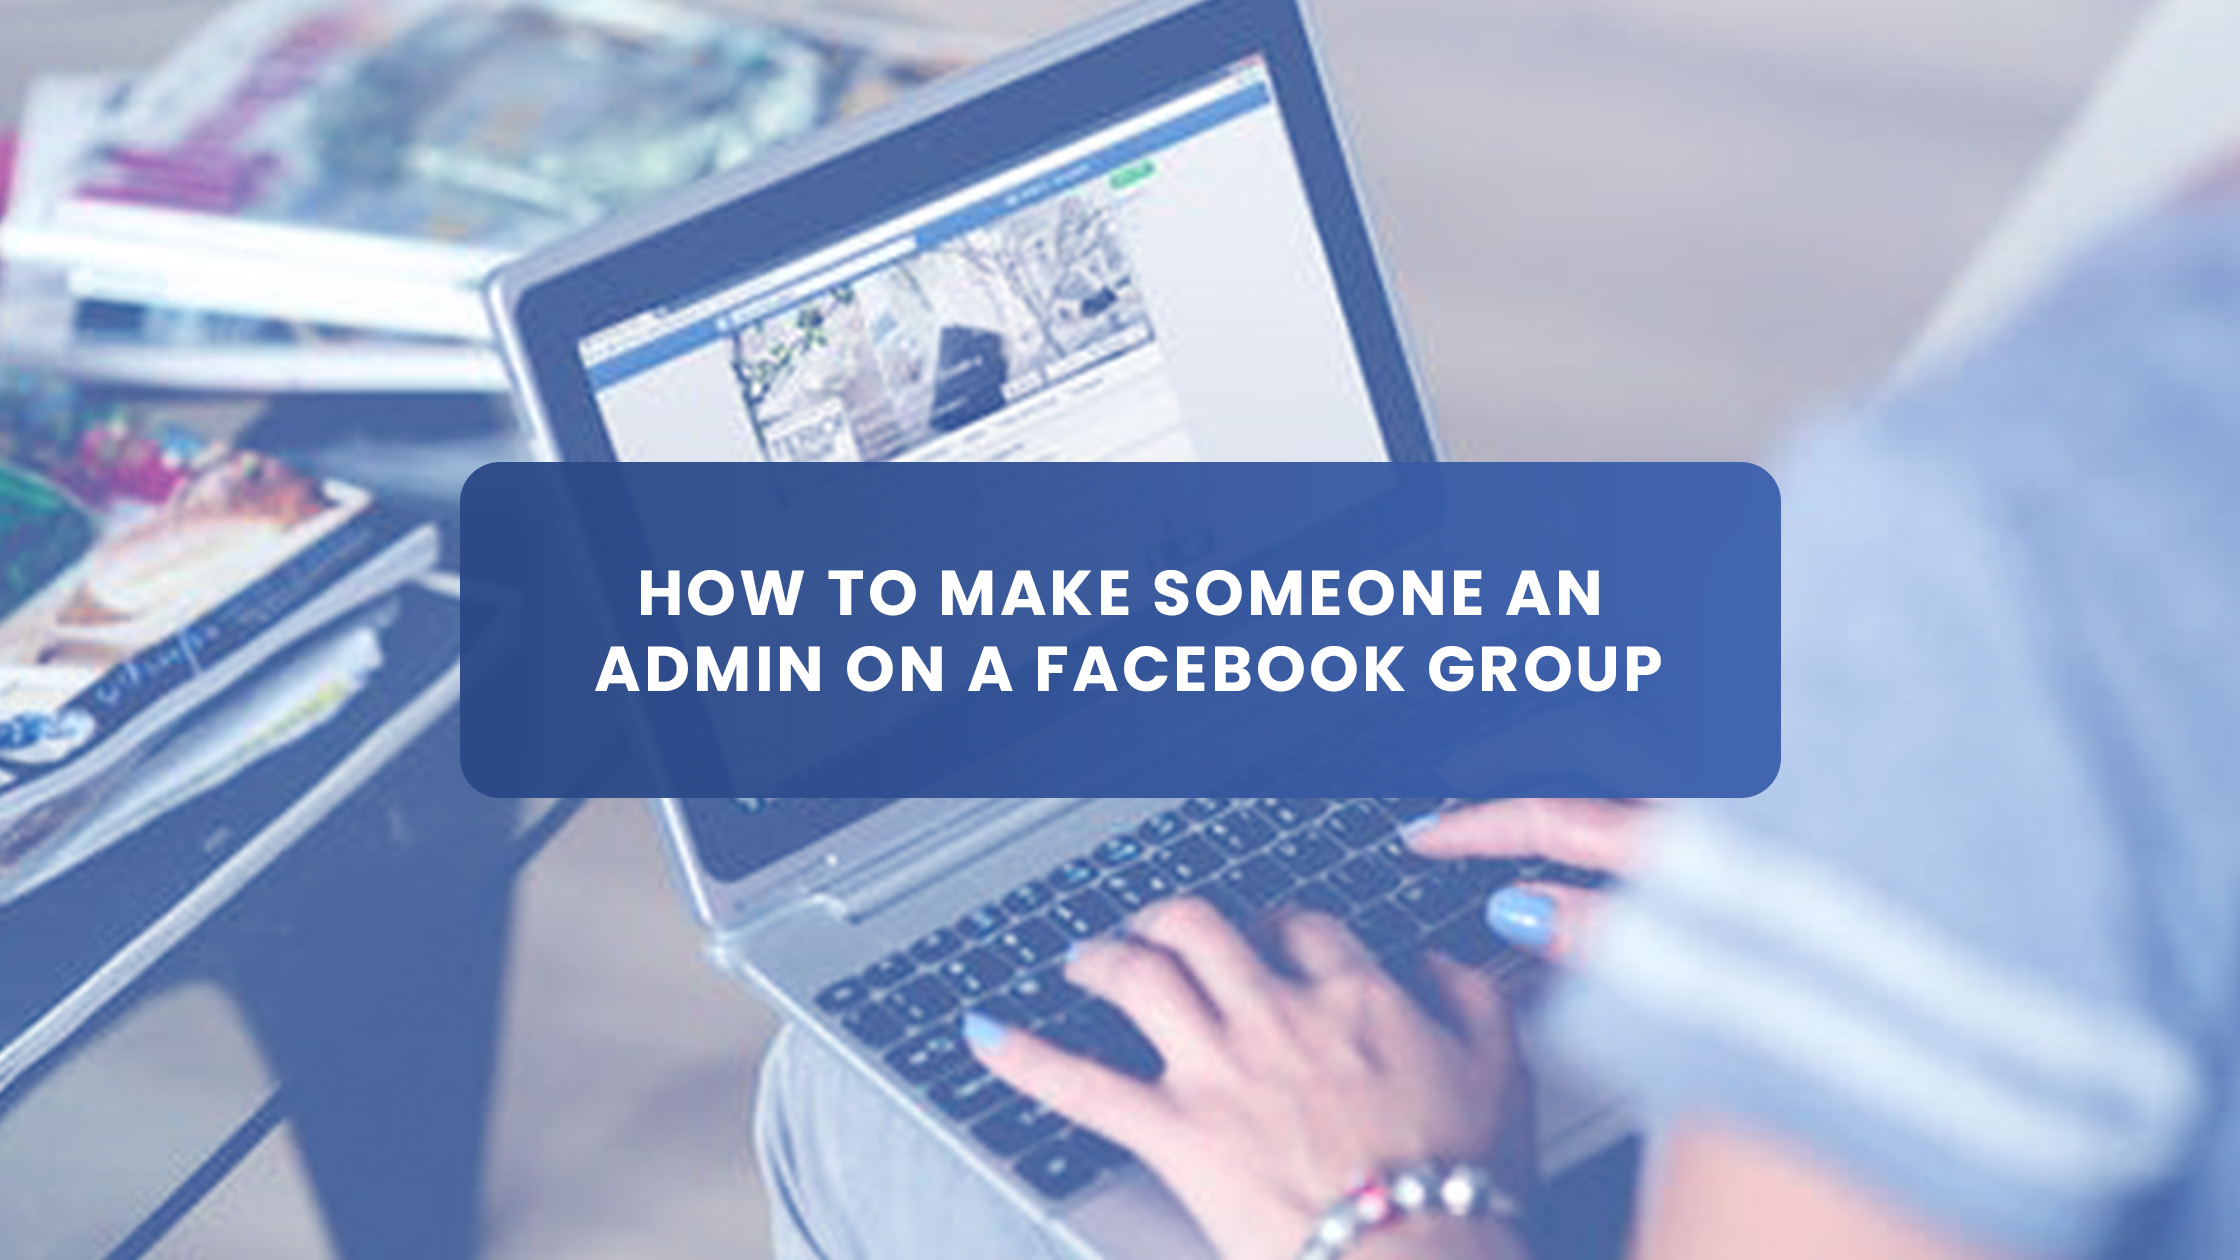 How to make someone an Admin on a Facebook Group